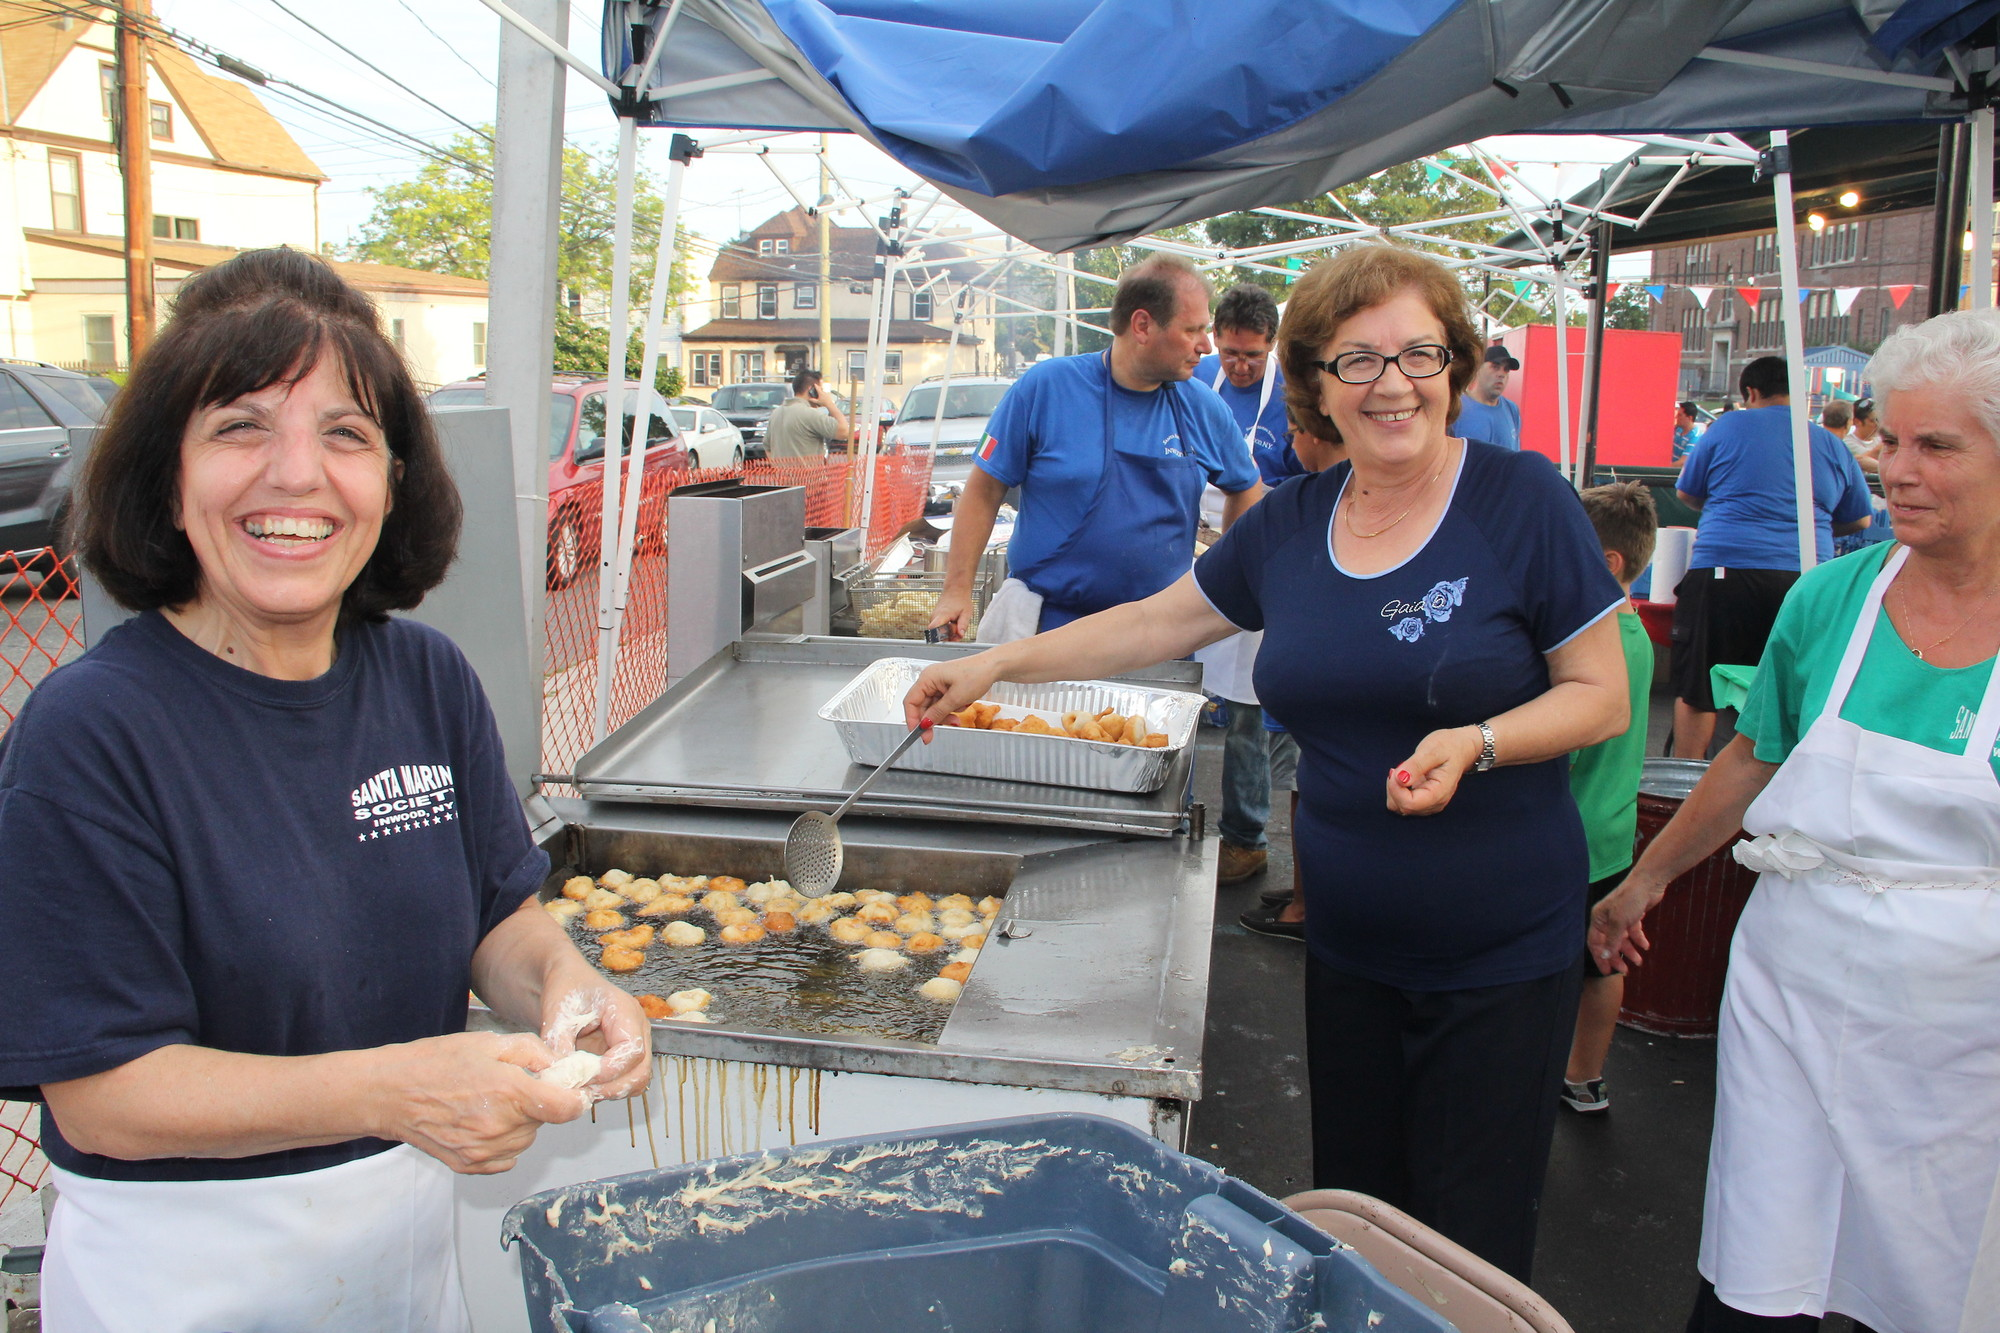 Food was one of the top attractions at the feast. From left, Pasqualina Curra, Lina Curra and Lina Pugliesi helped to make the zeppoles.